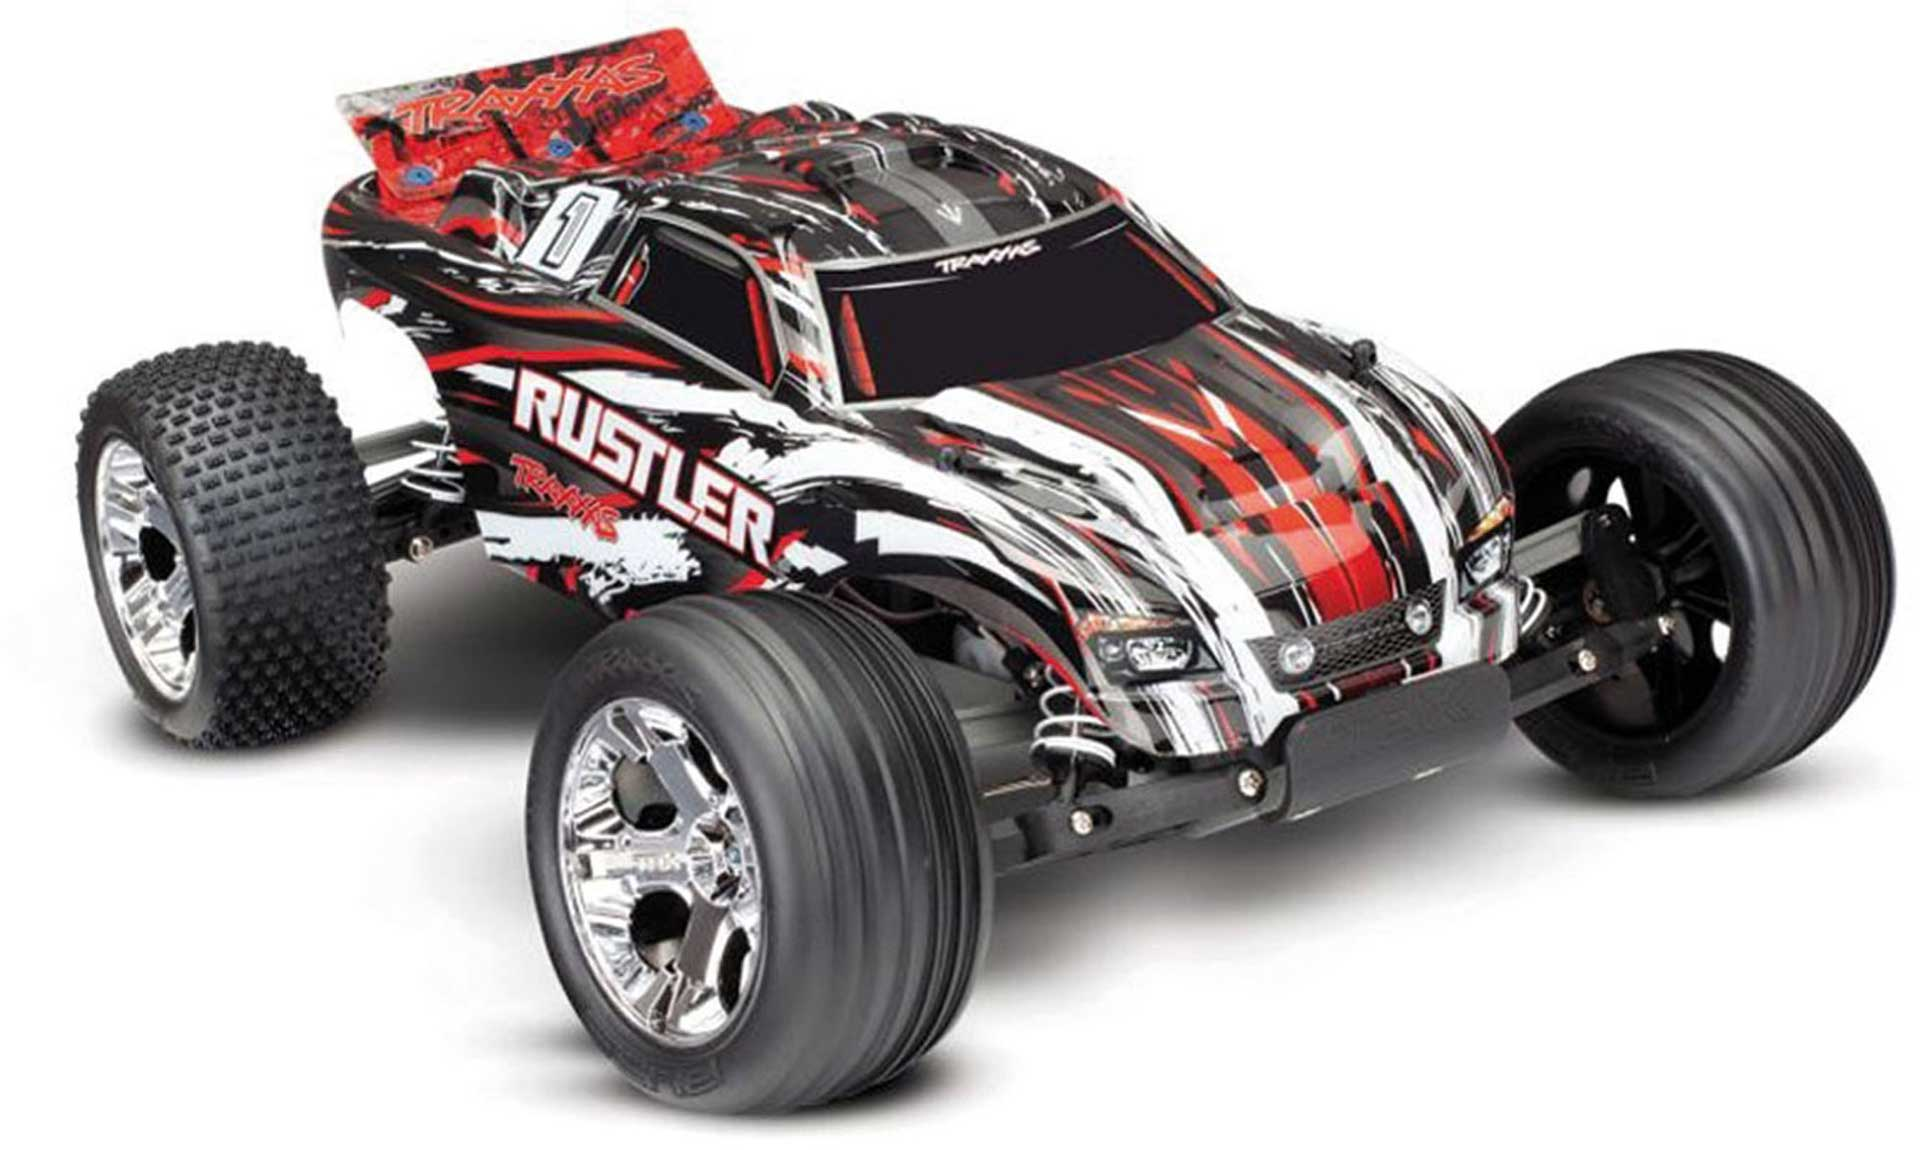 TRAXXAS RUSTLER RED MONSTER TRUCK BRUSHED 1/10 2WD RTR WITHOUT BATTERY/CHARGER